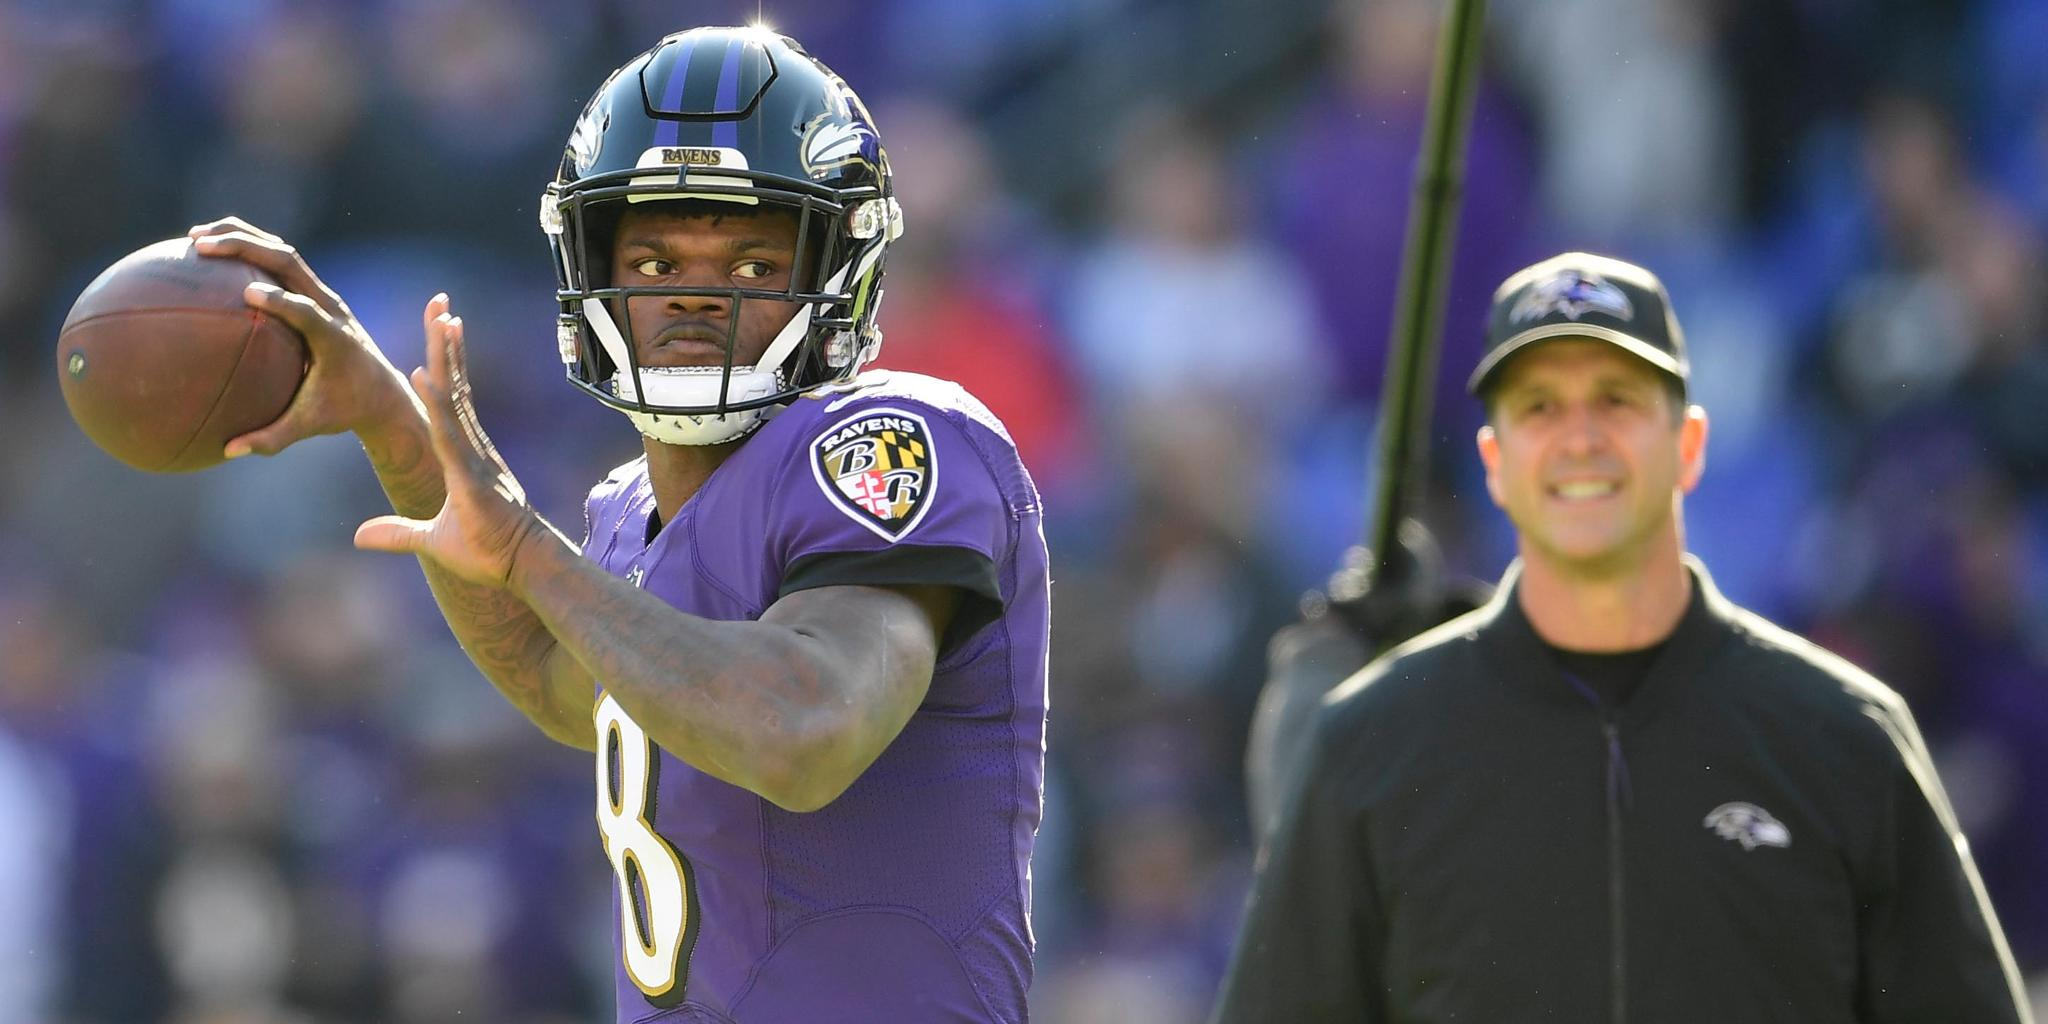 With the QB position cemented, what's next for the @Ravens? https://t.co/OkCVCZk2e5 (via @judybattista) https://t.co/ualoUHWDEC